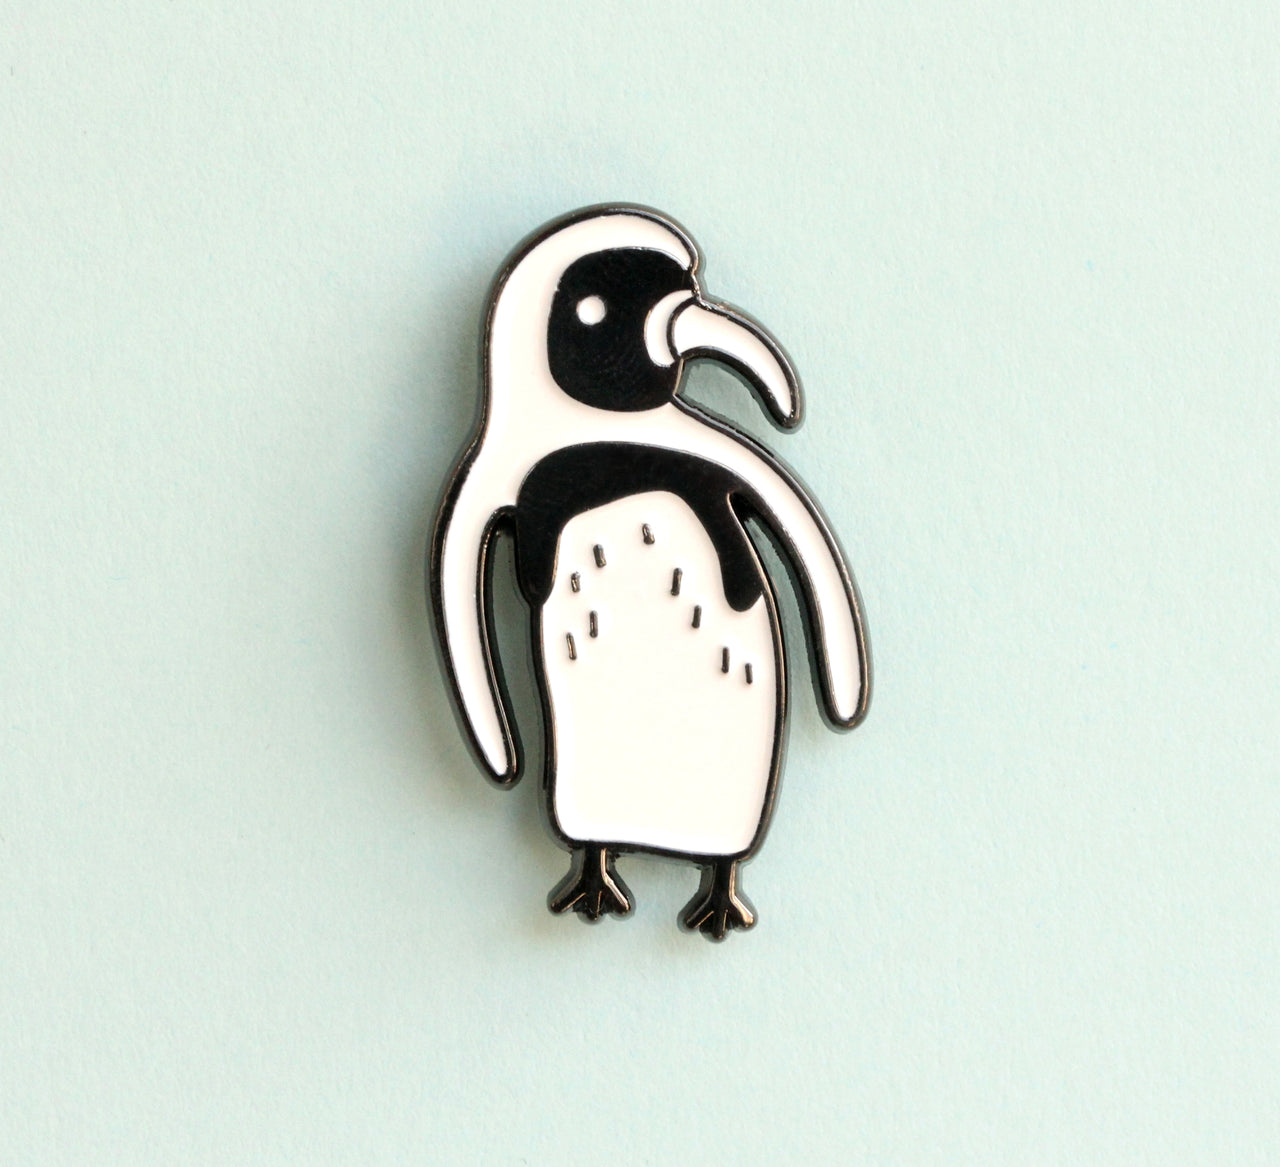 Penguin Enamel Pin |The Misfortunes by Noa Goffer